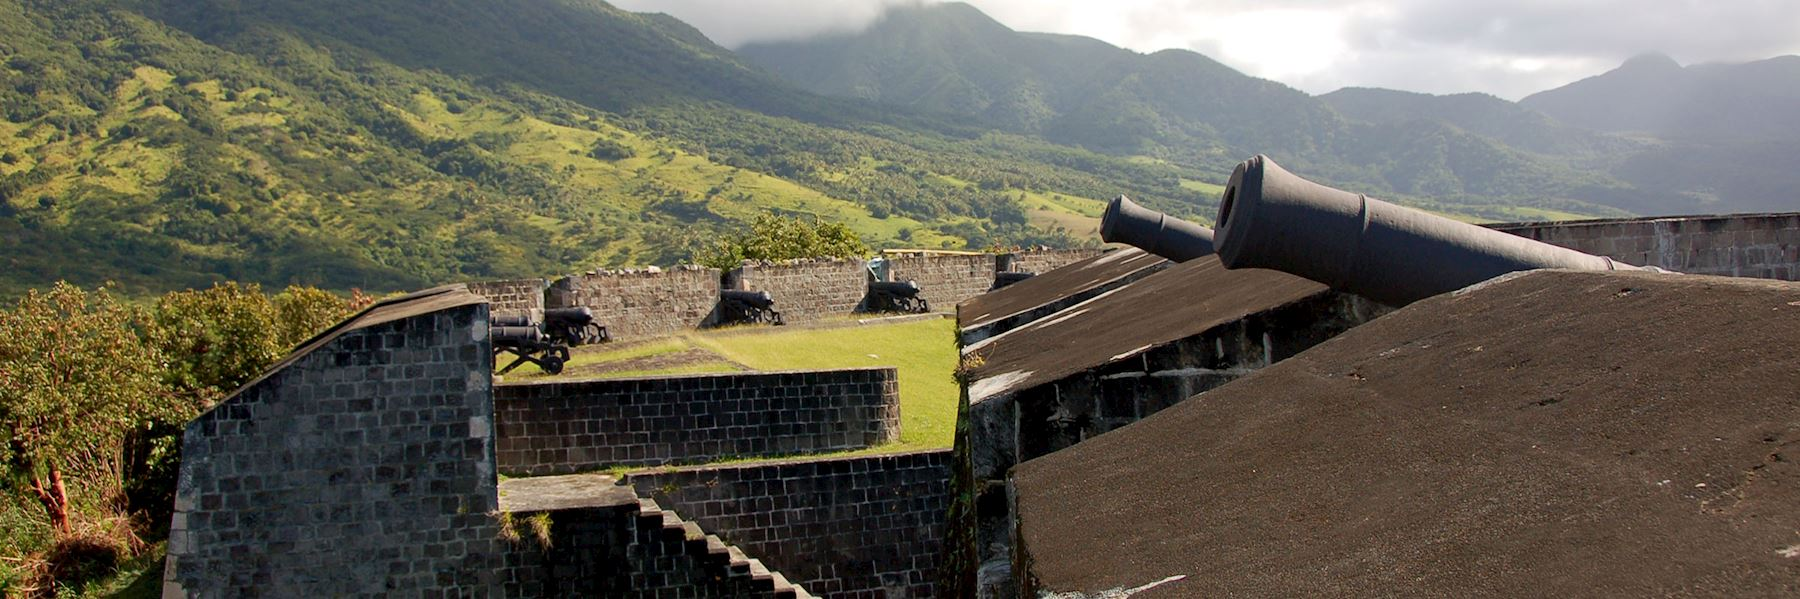 Saint Kitts and Nevis travel guides